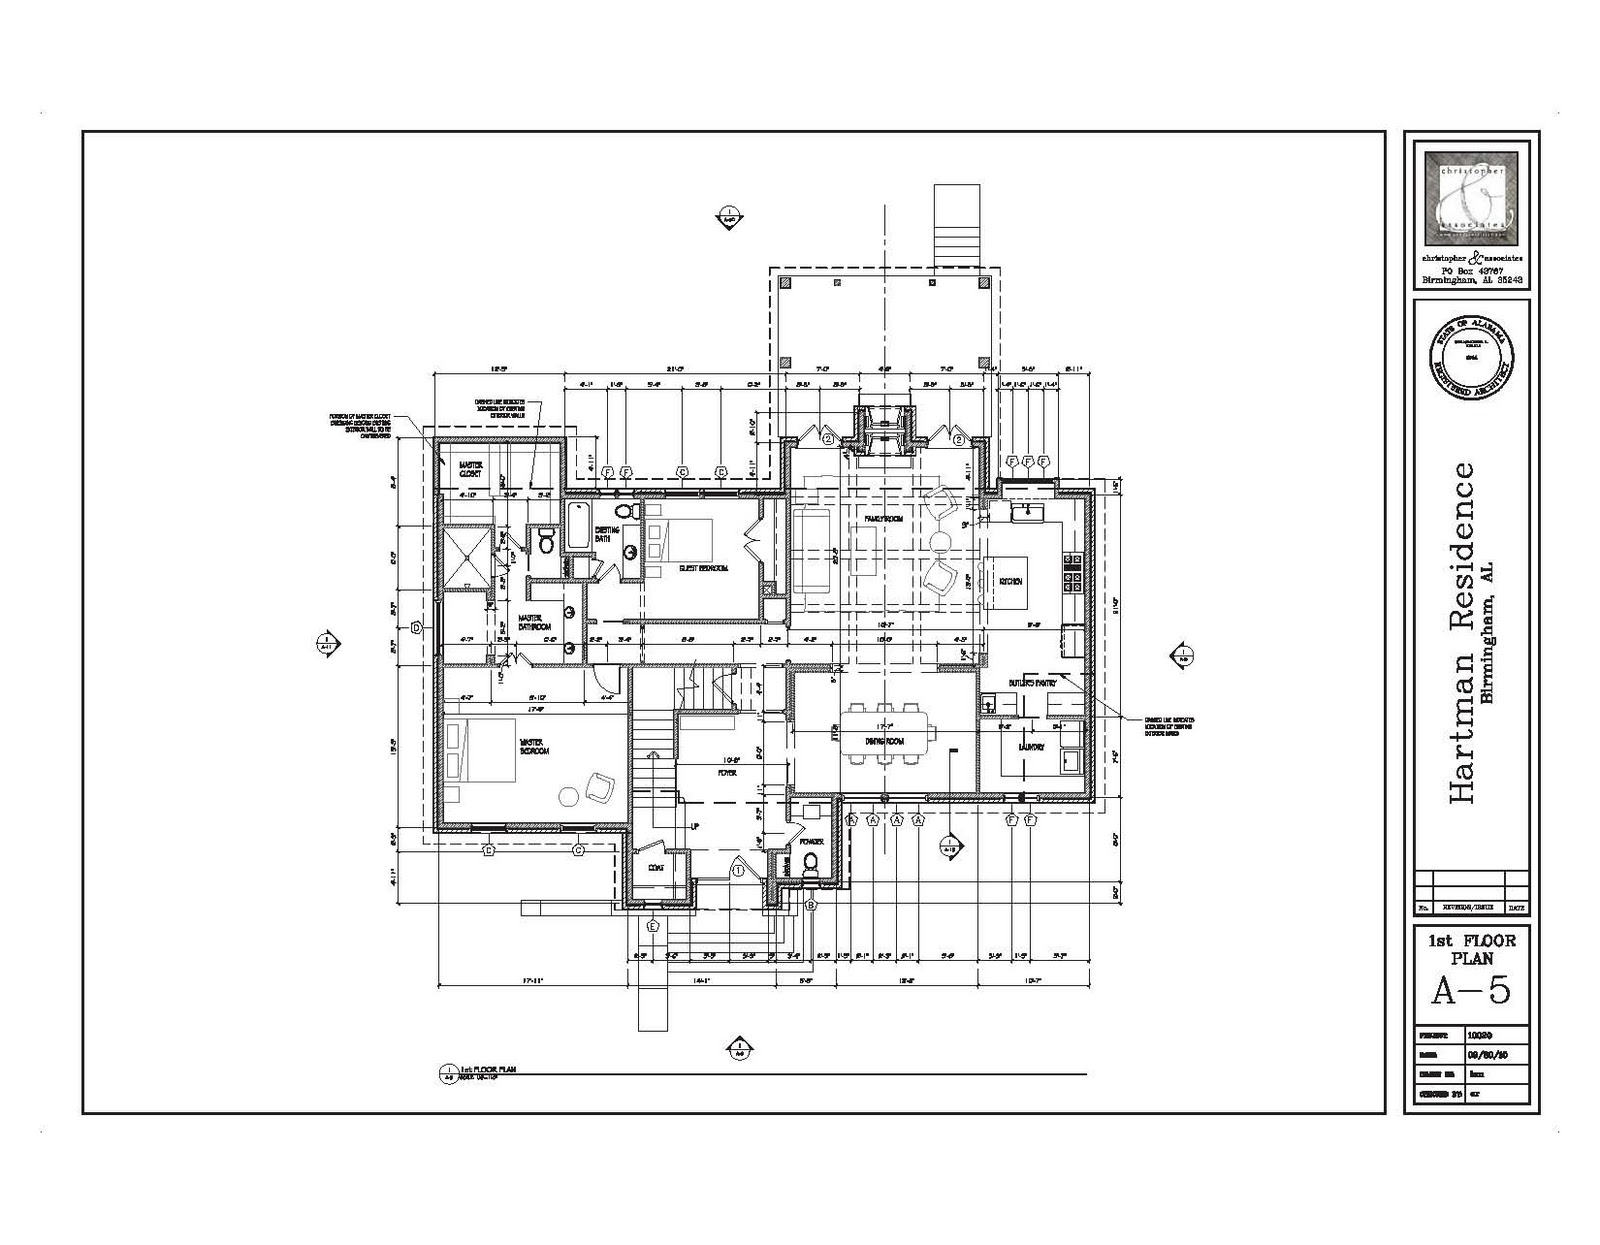 2 bedroom guest house plans bedroom furniture high Autocad house drawings